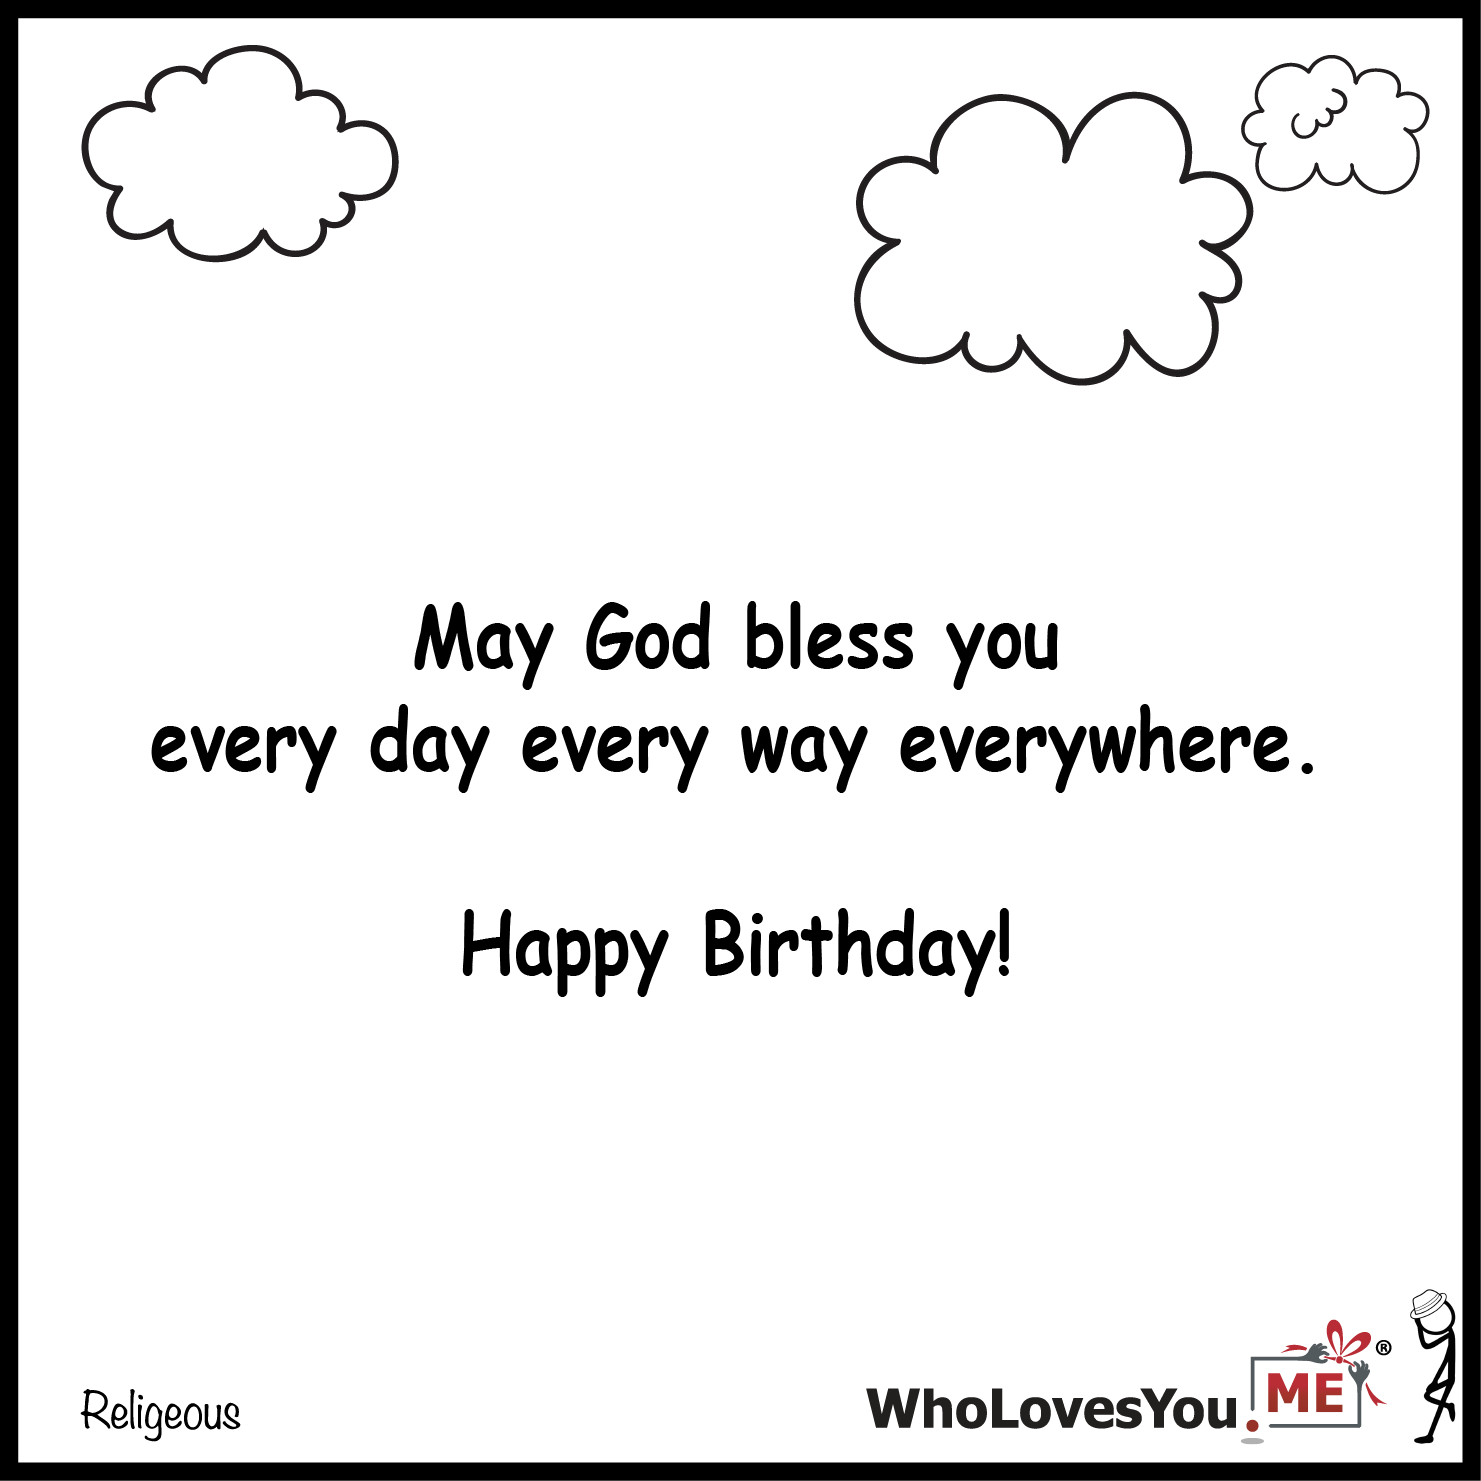 May God bless you every day every way everywhere. Happy